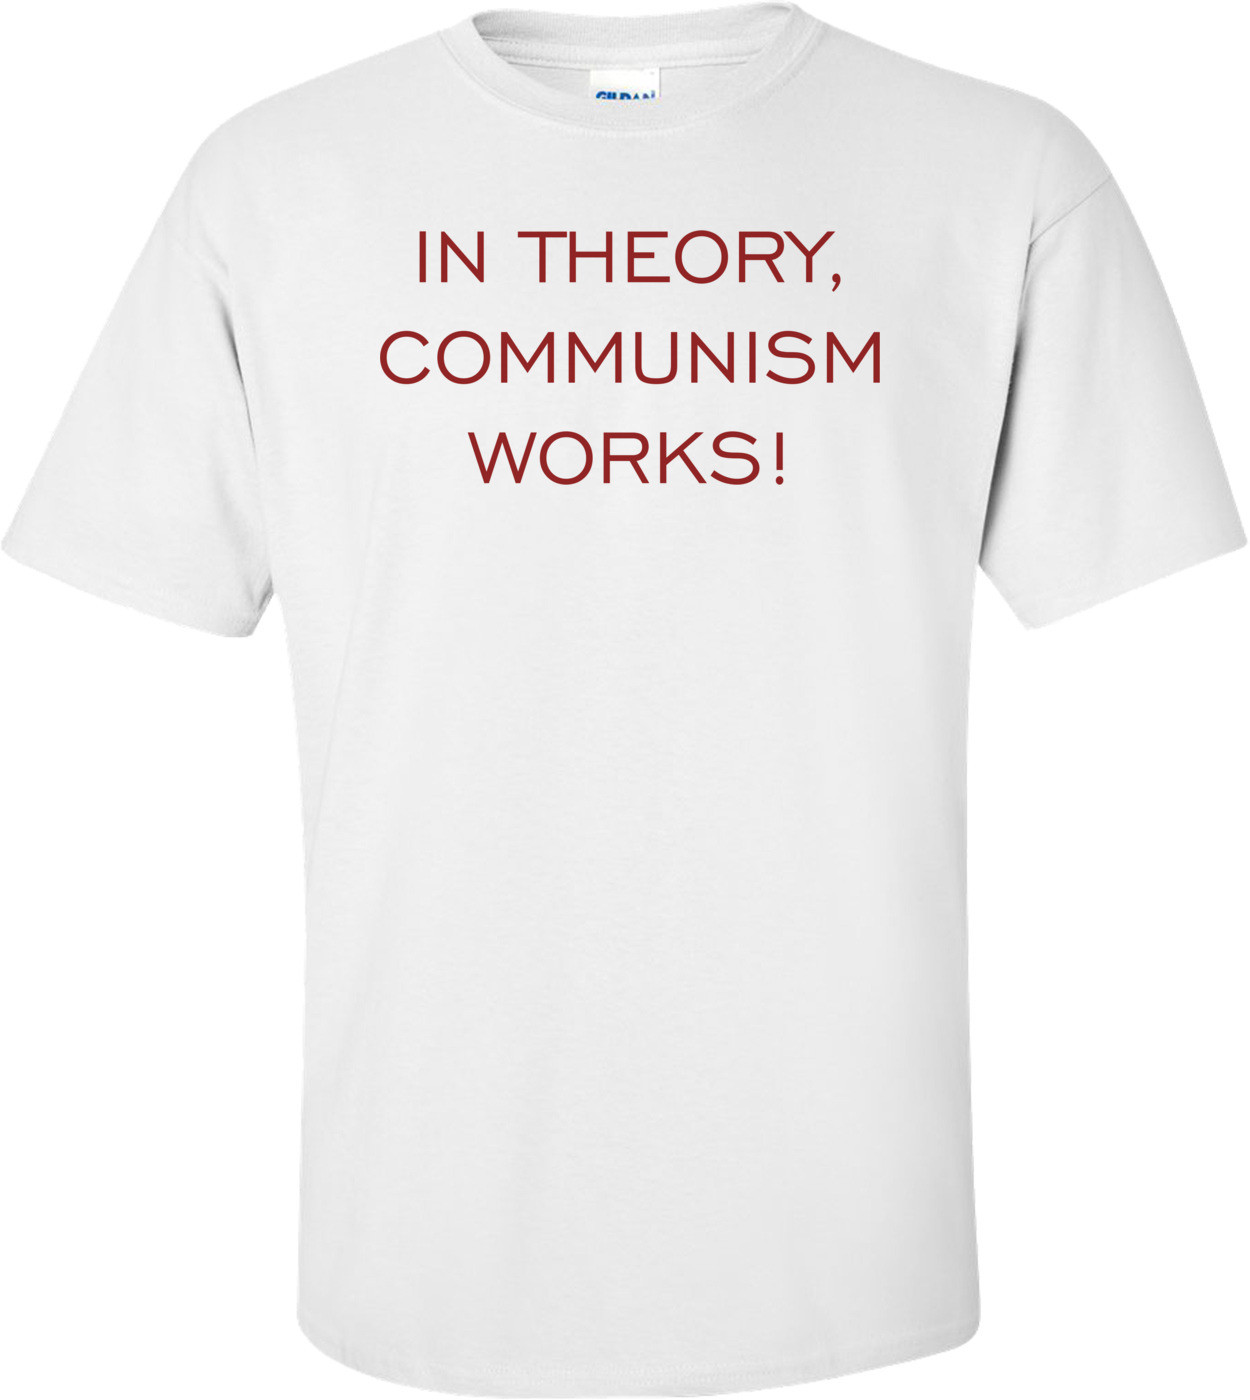 IN THEORY, COMMUNISM WORKS! Shirt